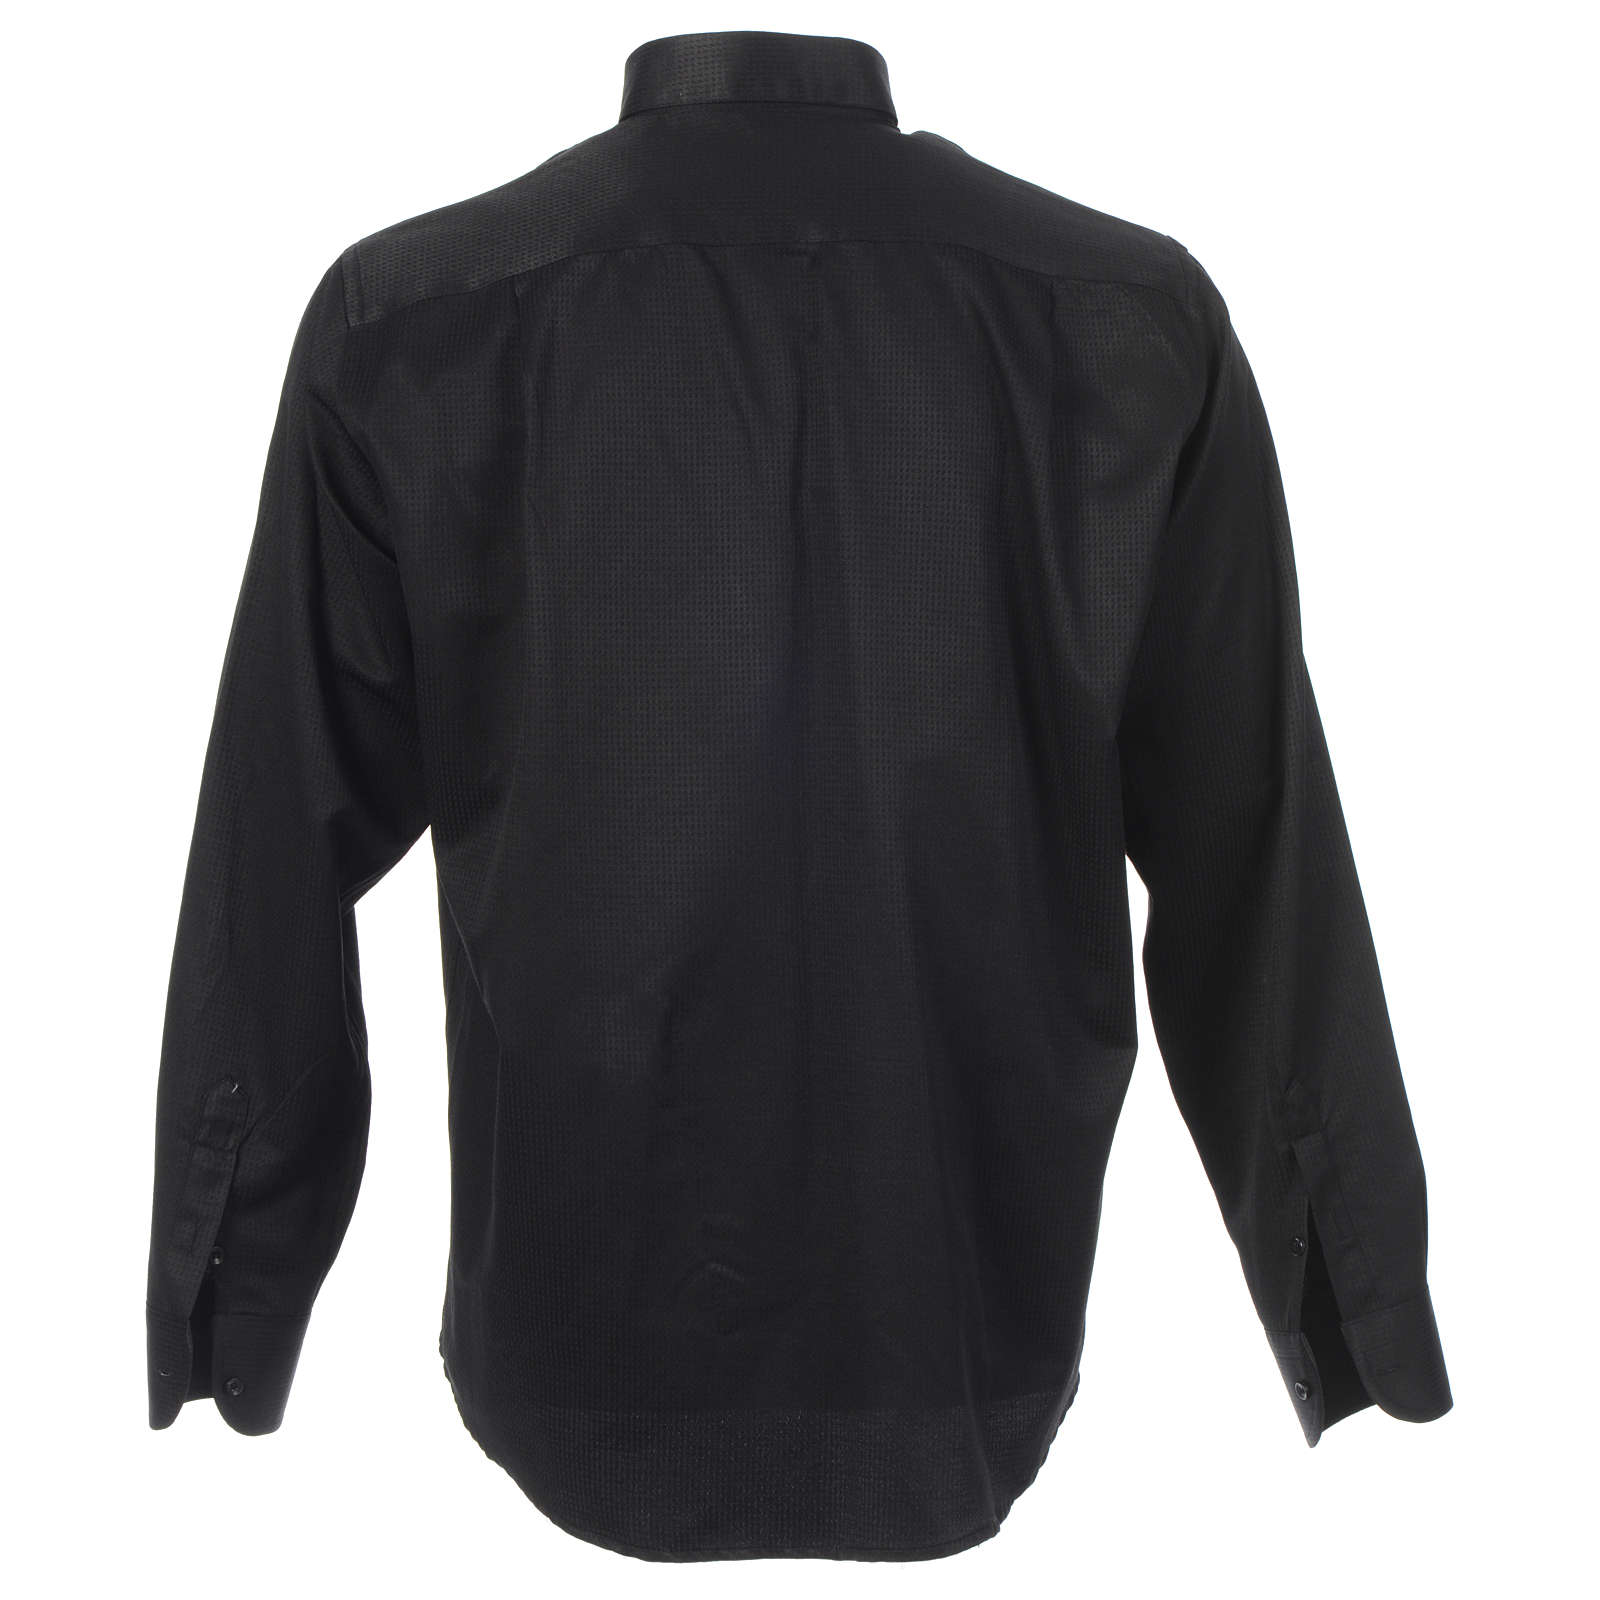 Long sleeve clerical shirt, black jacquard 4